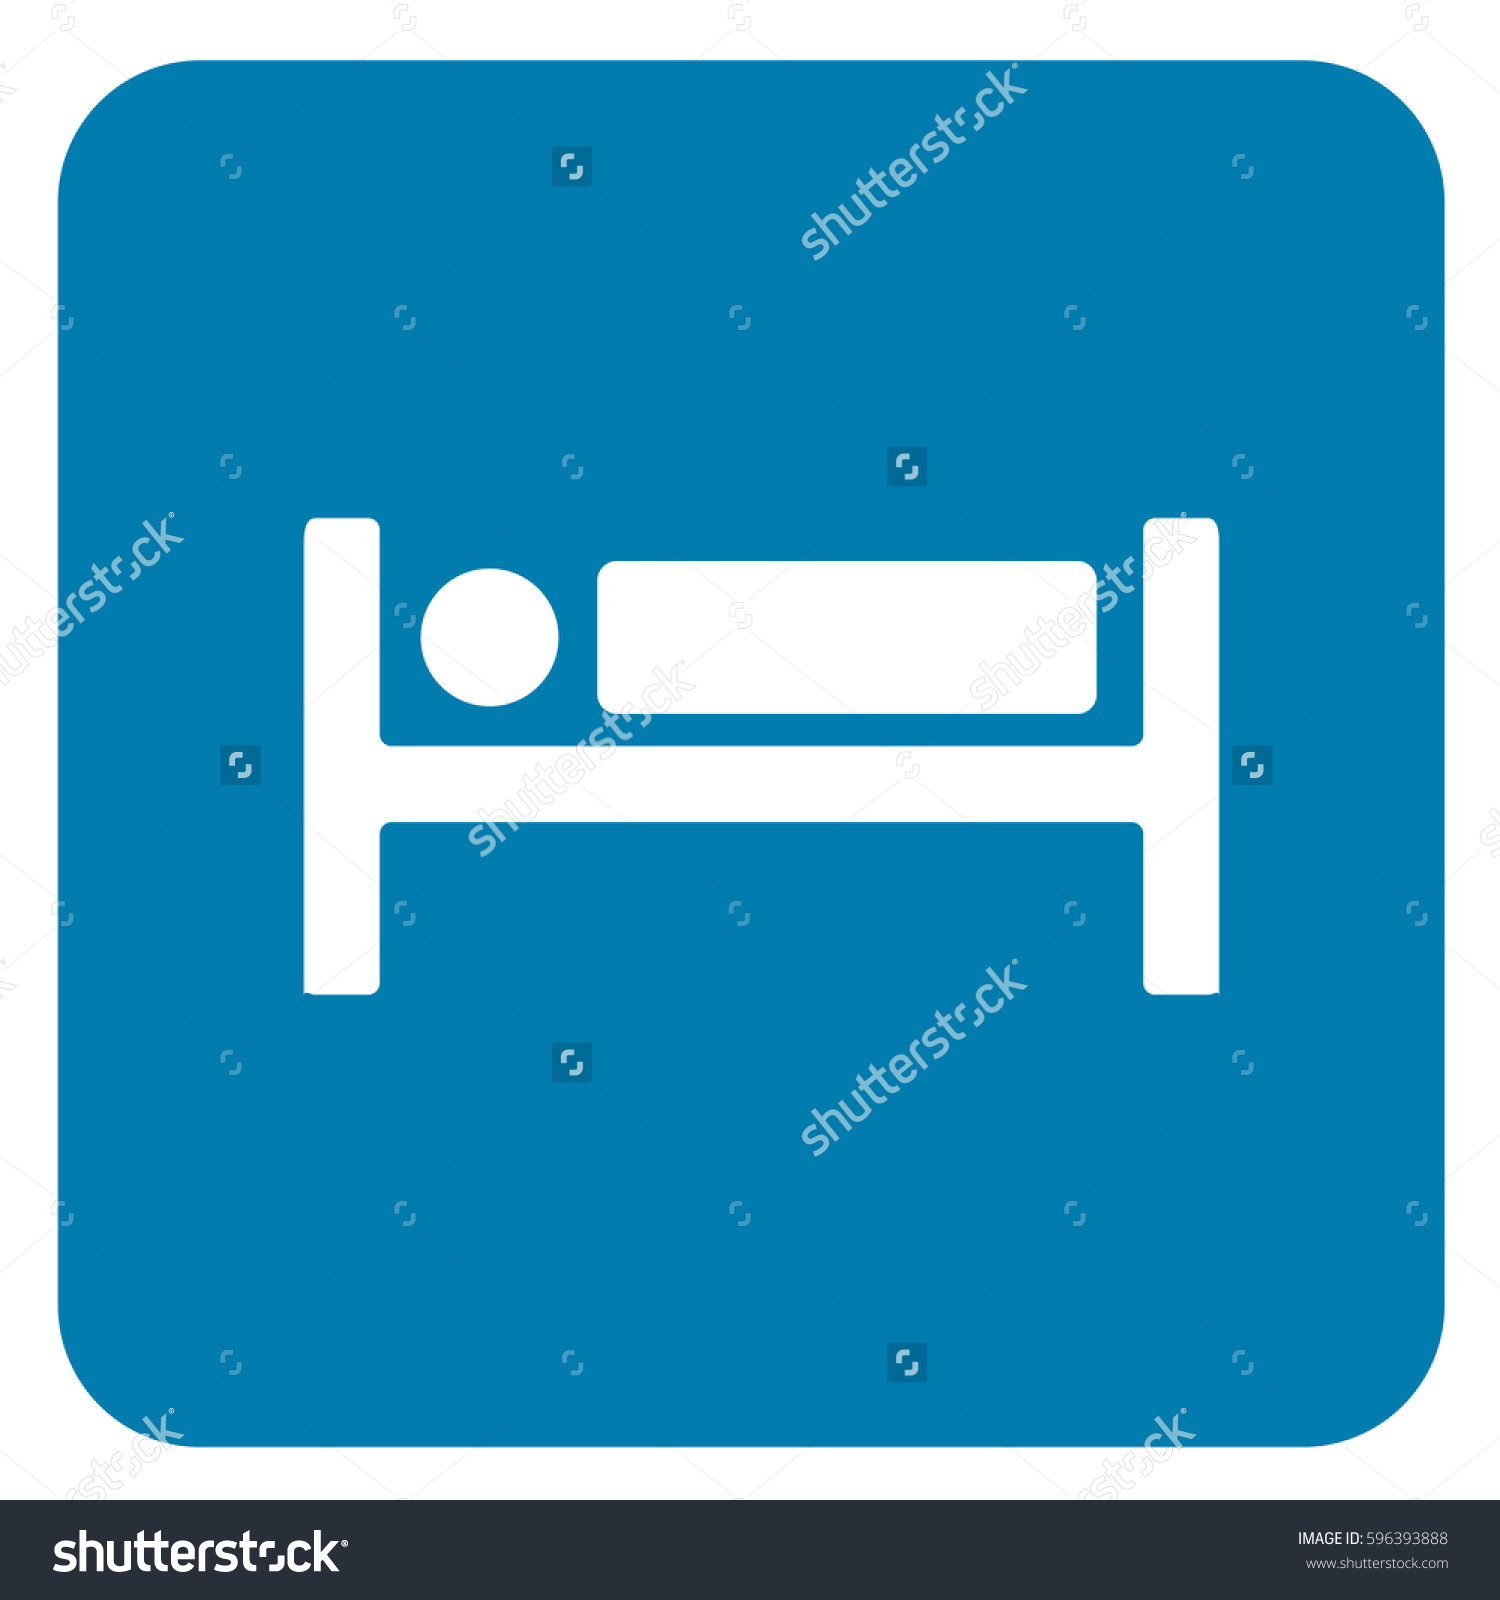 Hotel Sign Blue Vector Stock Vector 596393888.